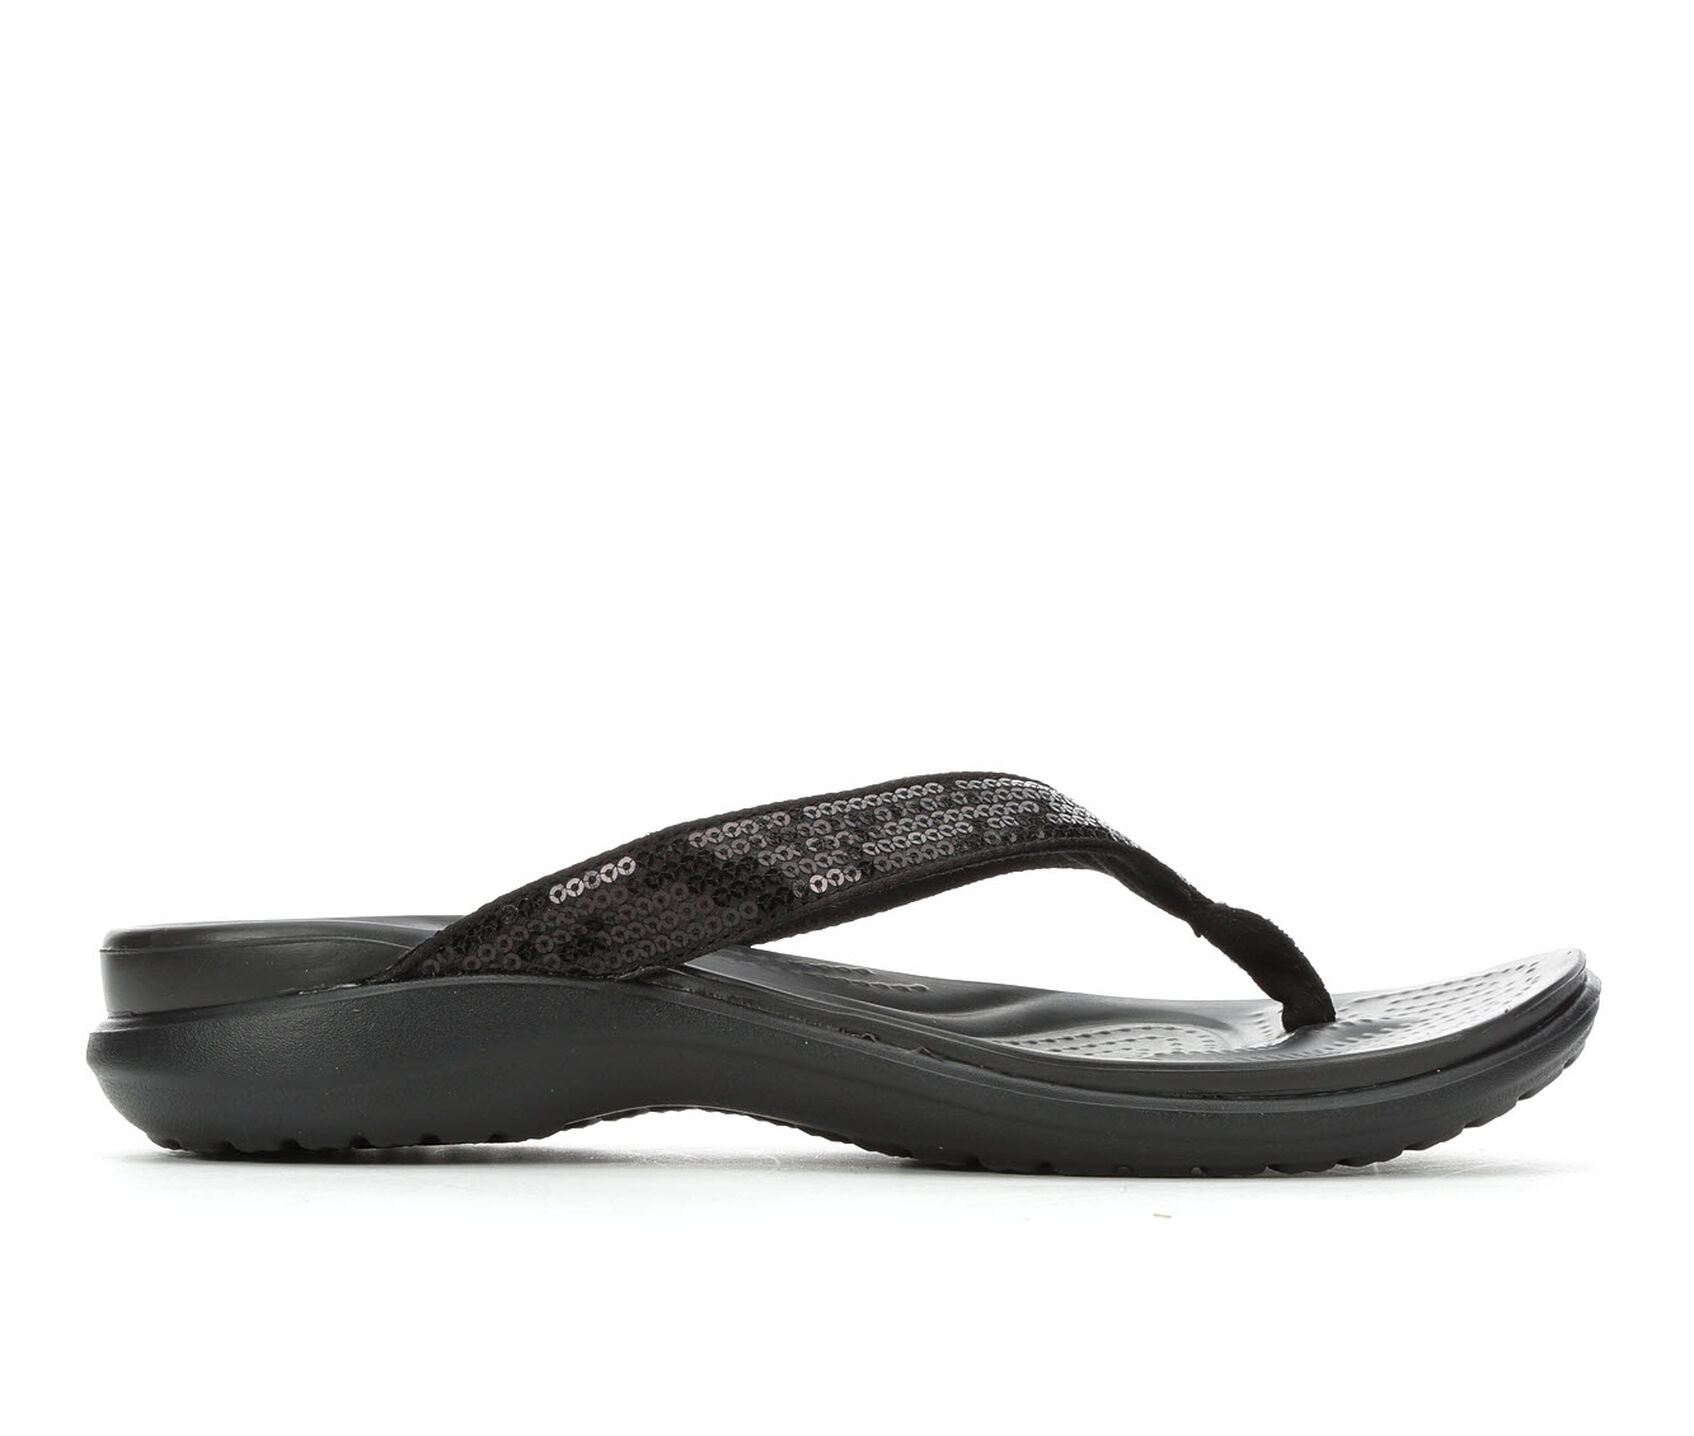 50da30bdfe63 ... Crocs Capri V Sequin Flip-Flops. Previous